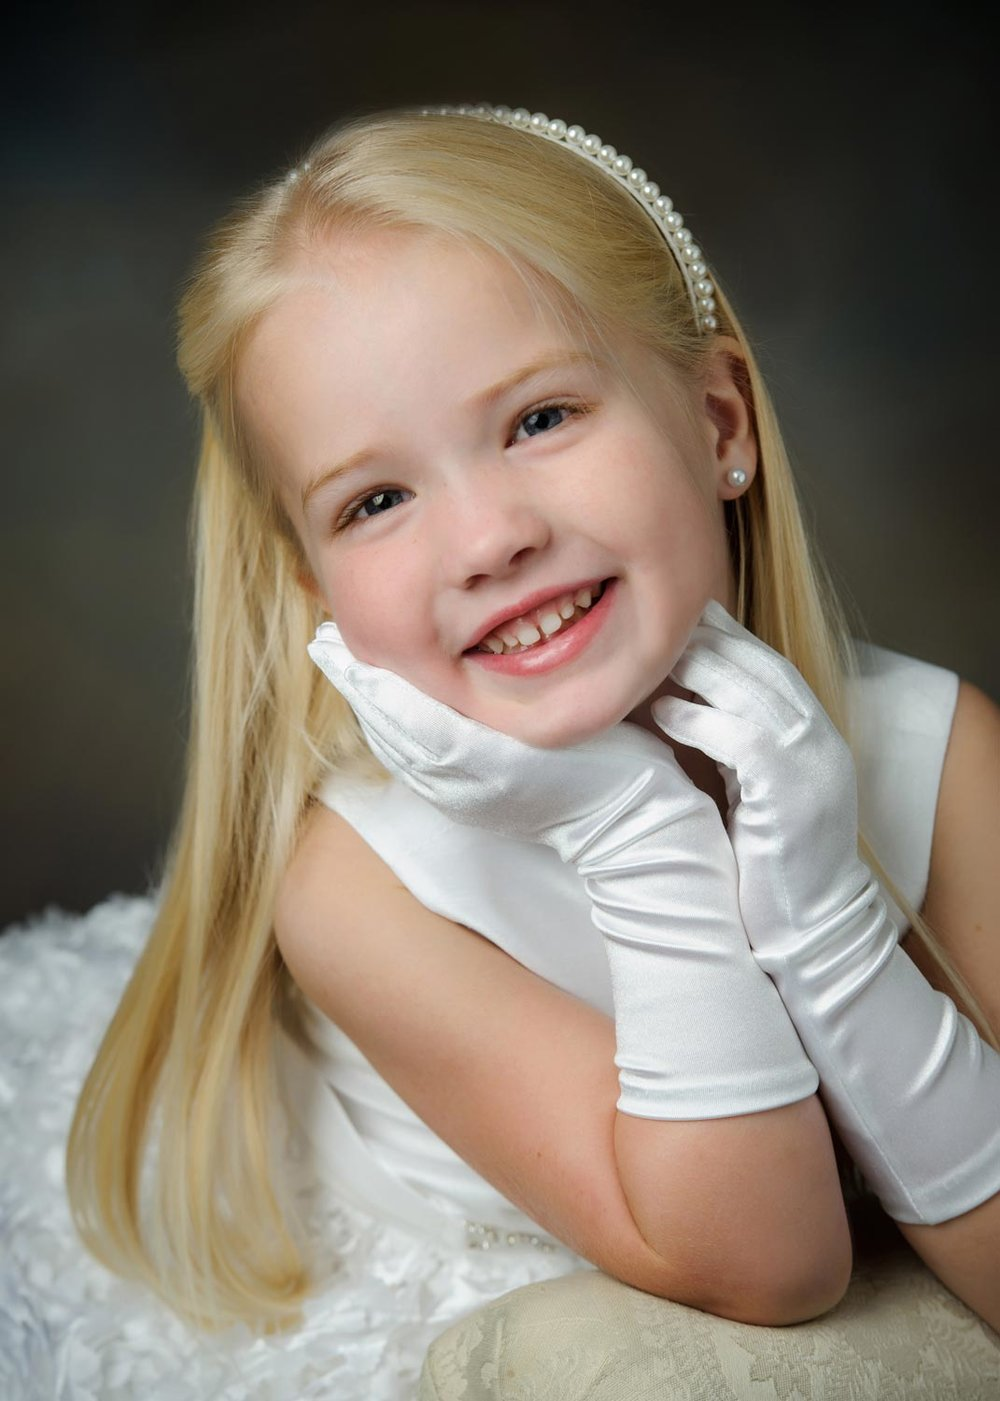 Studio_Walz_senior_childrens_by_Scott_Walz01.jpg